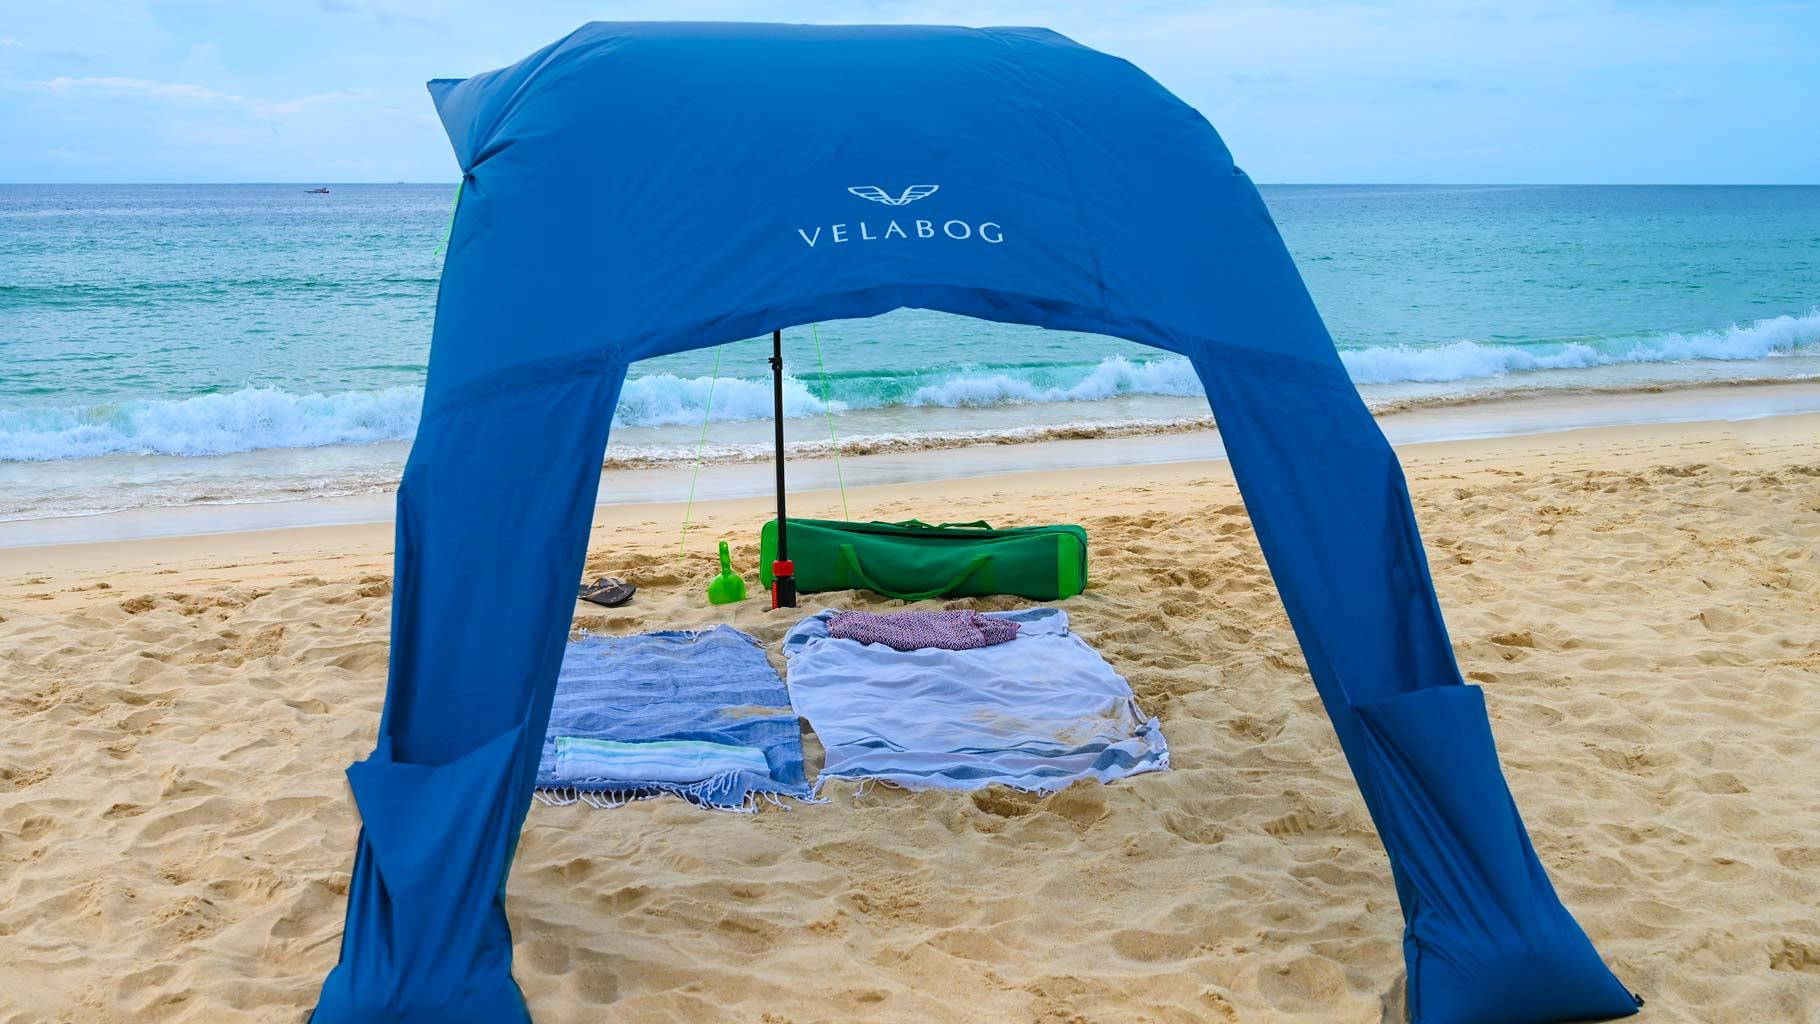 Velabog sun sail «Breeze» blue on the beach with a light breeze. Sun sail, beach umbrella and beach tent in one. High. Pleasant air circulation. View from behind.